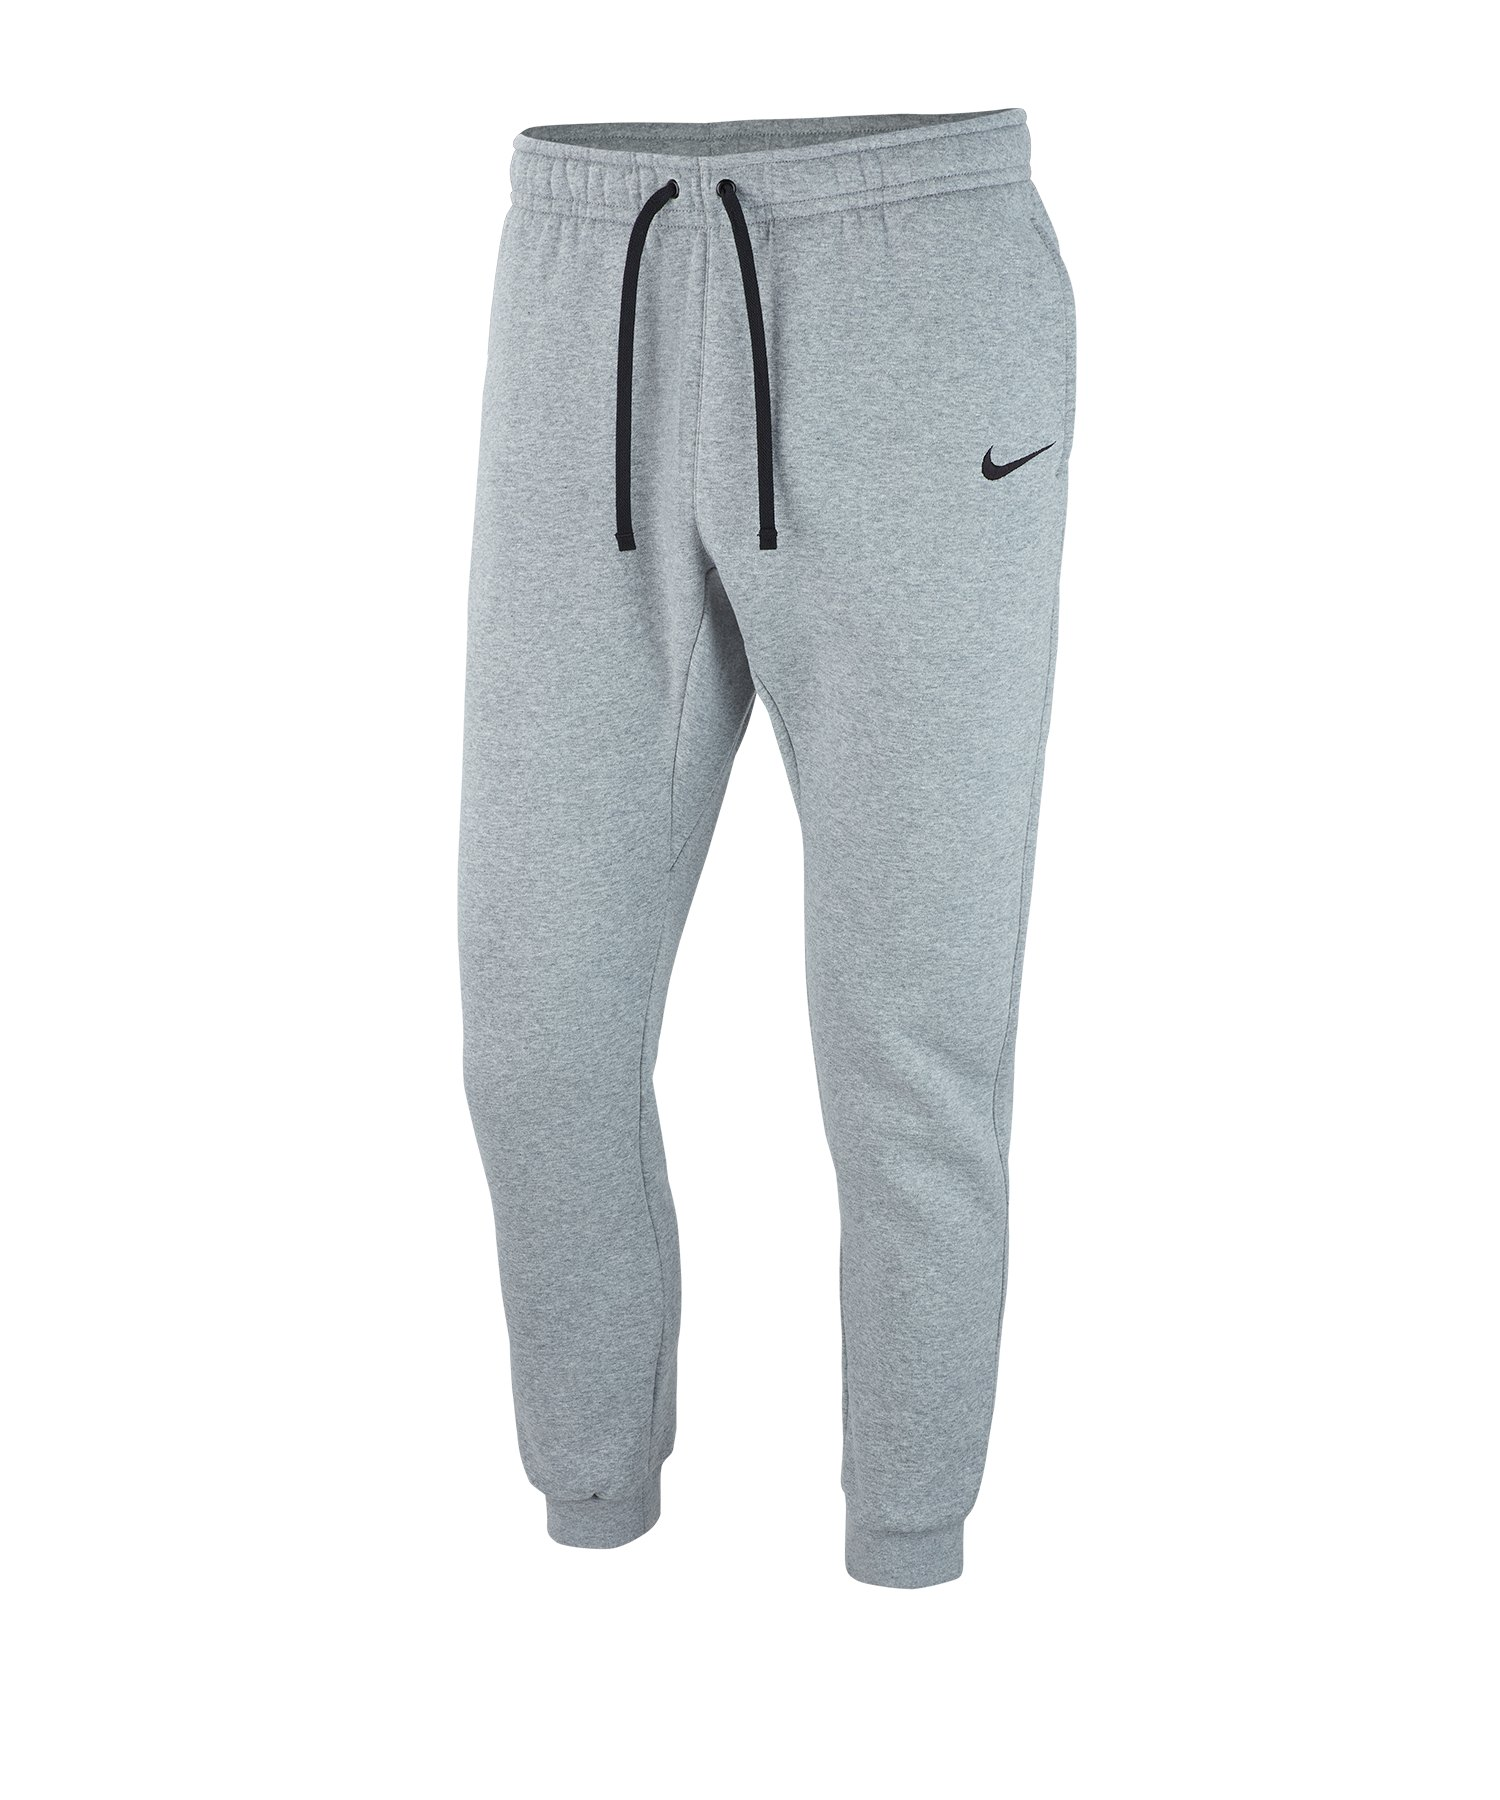 Nike Team Club 19 Fleece Jogginghose Grau F063 - grau